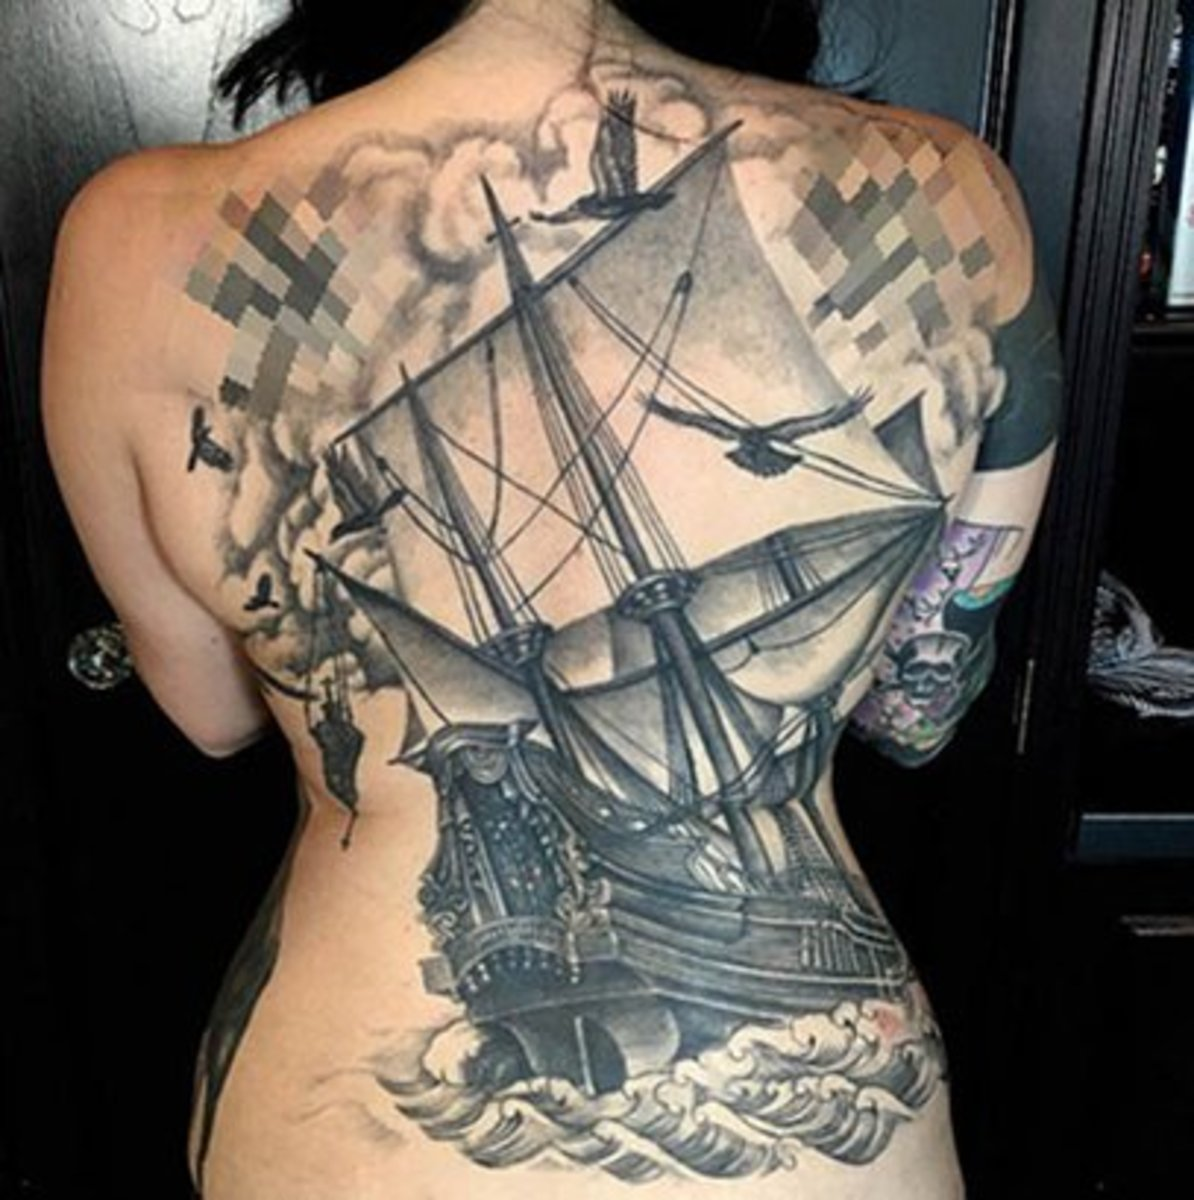 7 Stunning Black Back Tattoo Designs For Women Tattoo Ideas Artists And Models